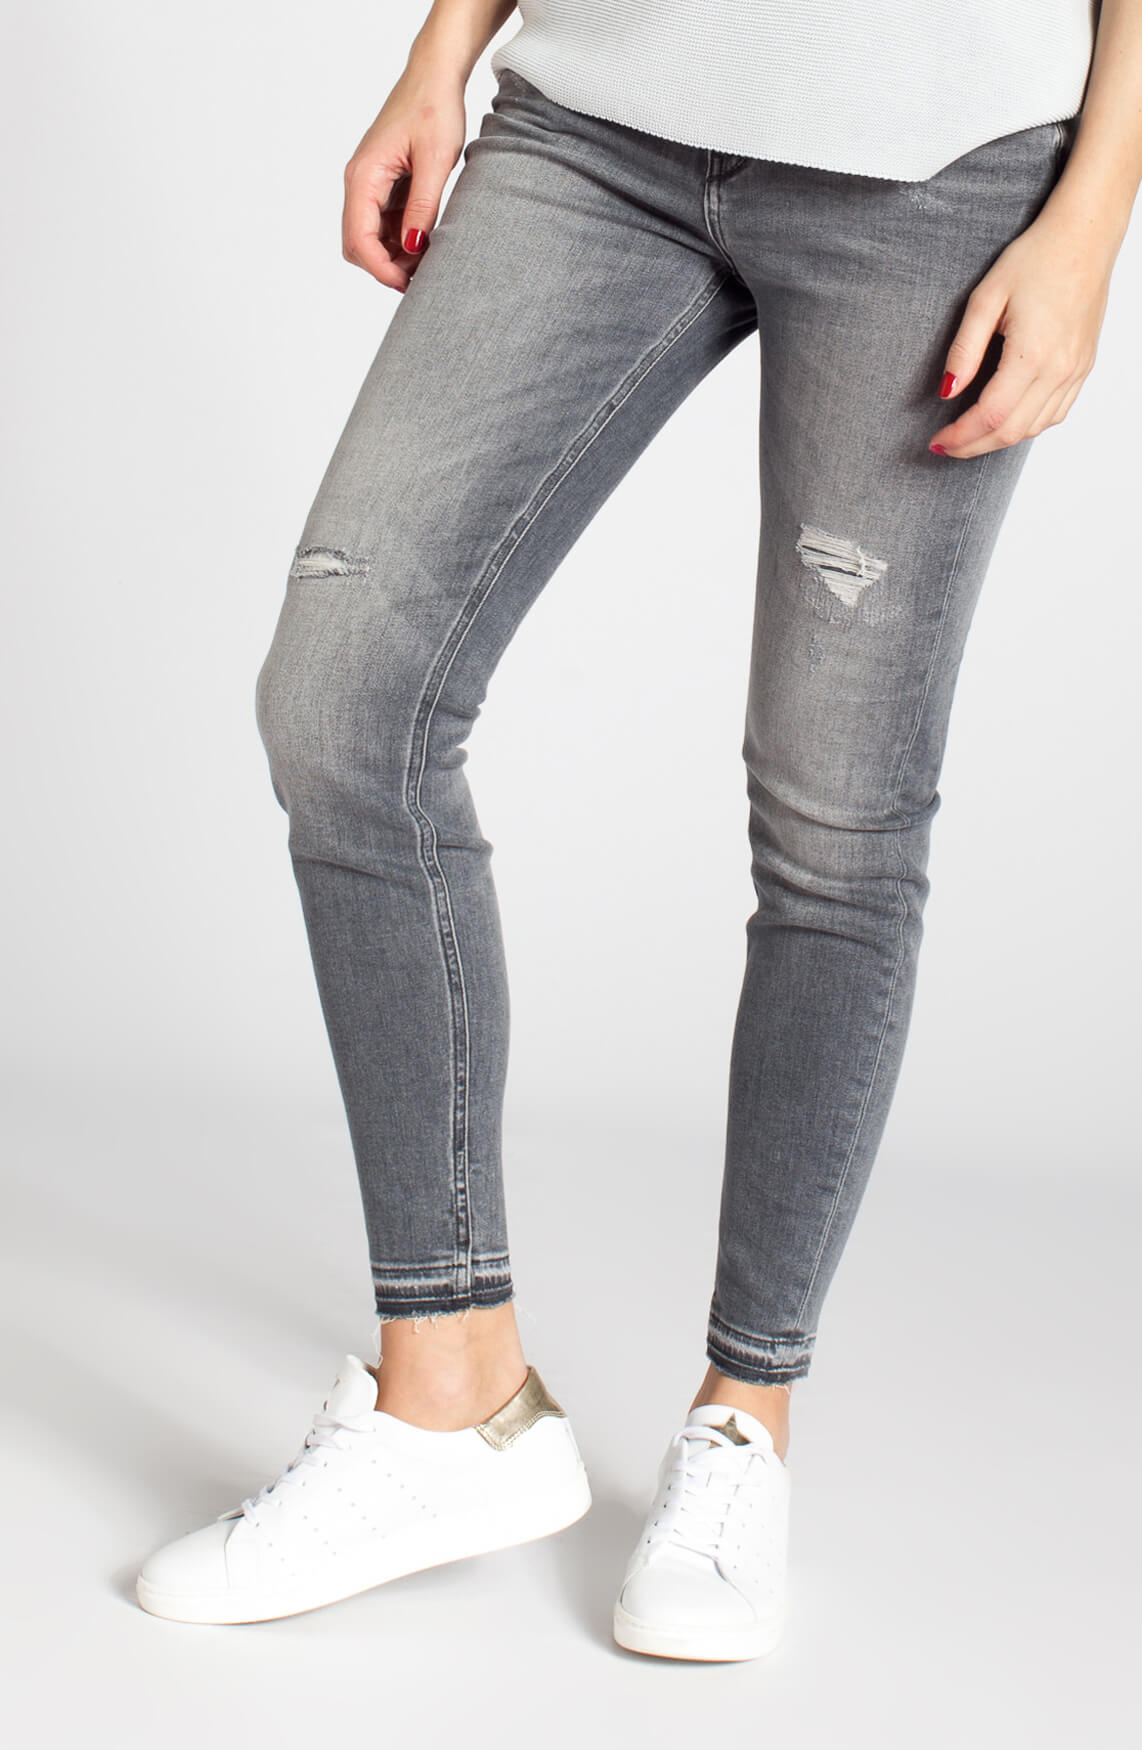 Drykorn Dames Need grijze jeans